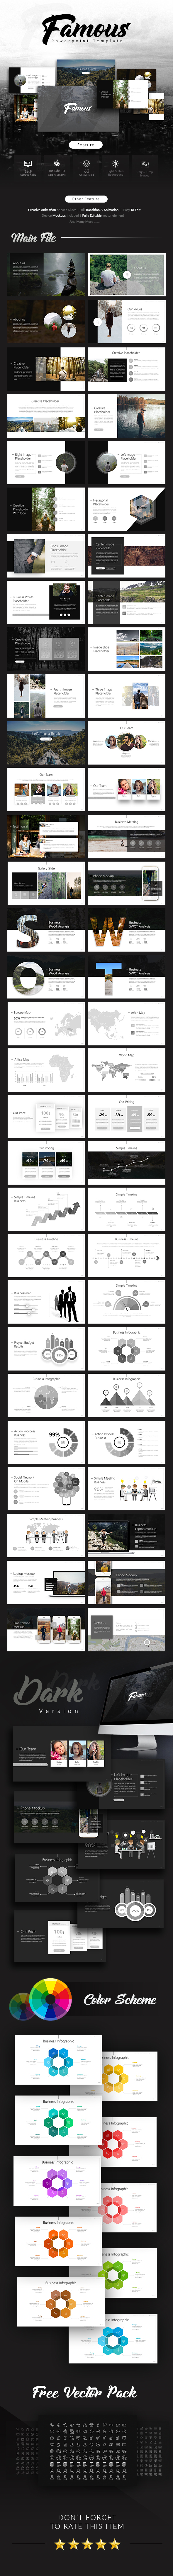 Famous - Creative Presentation - Business PowerPoint Templates